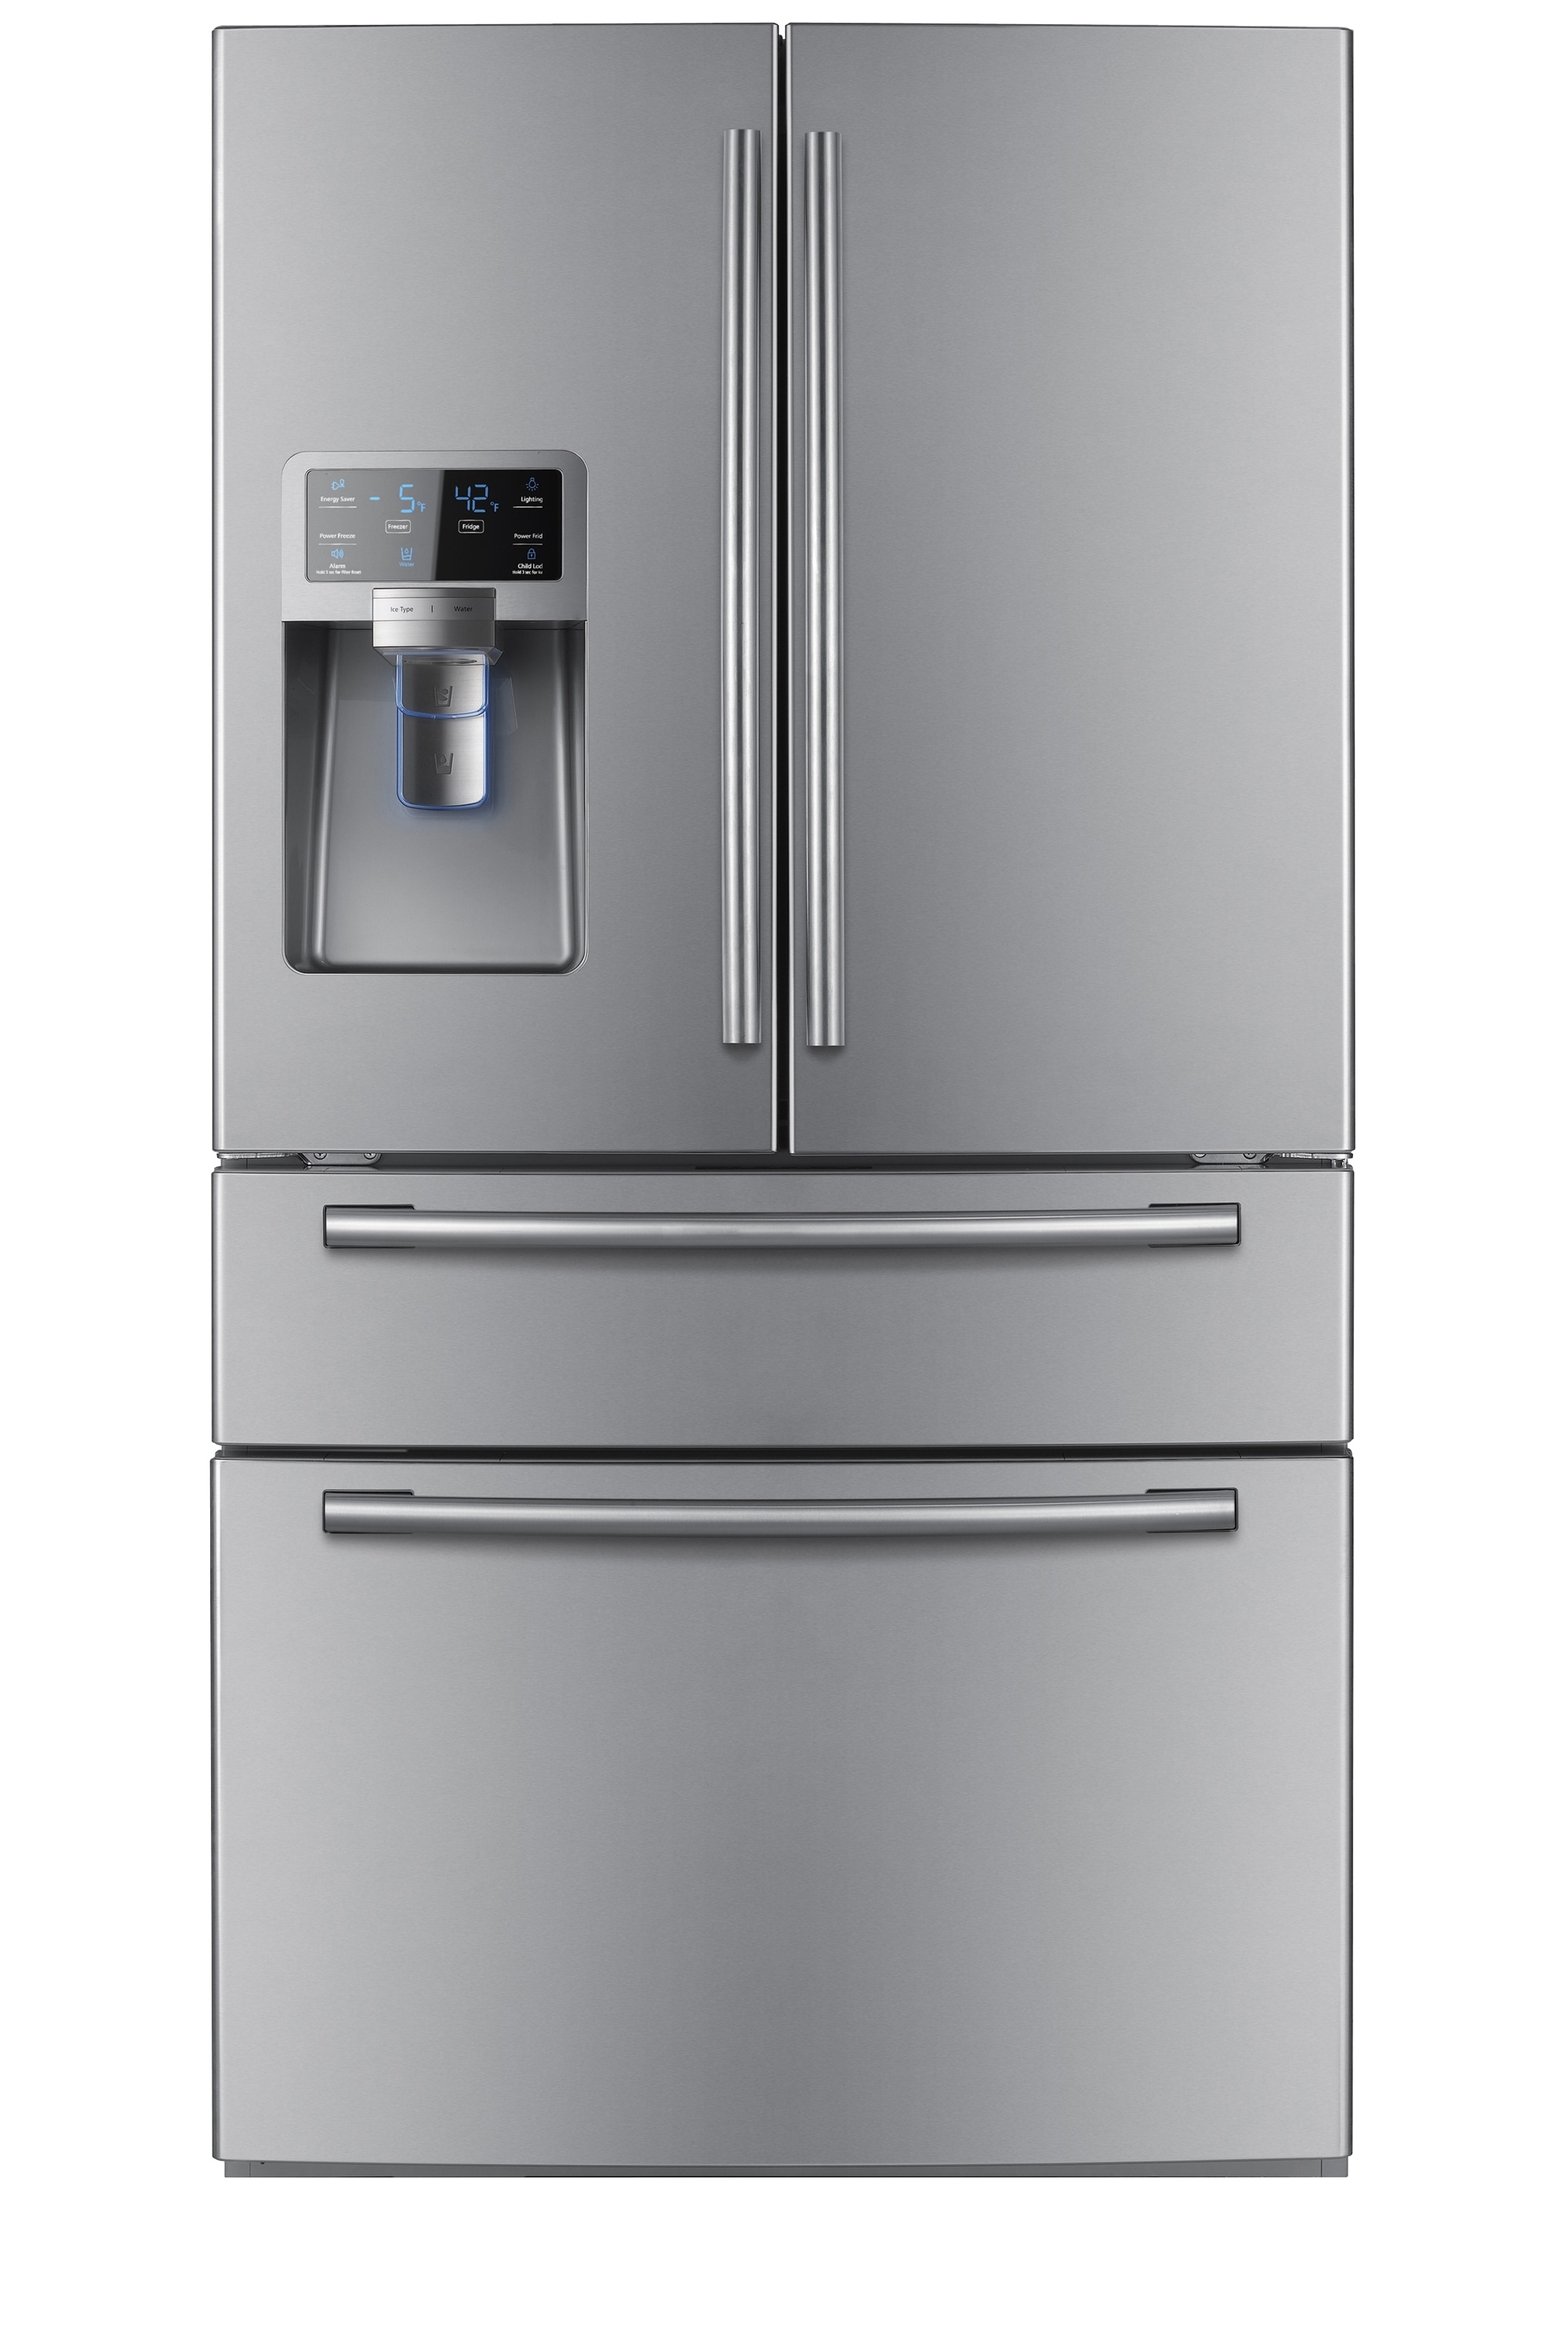 AW3 28.0 cu.ft 4-Door French Door Refrigerator (Stainless Steel)